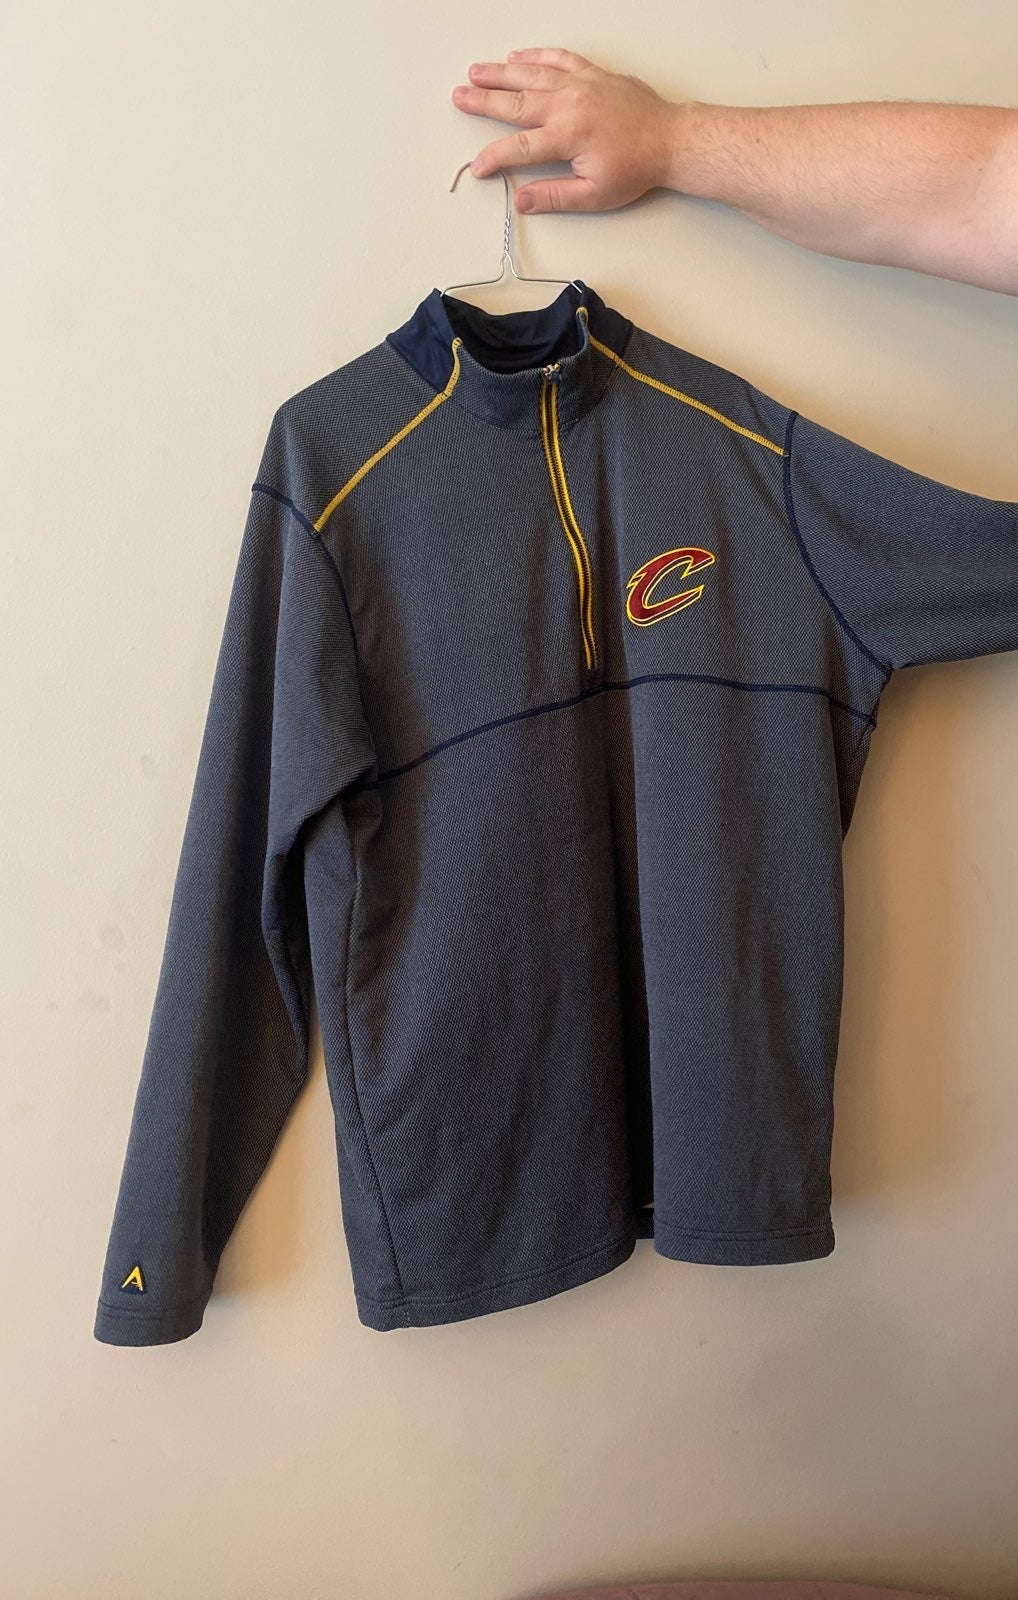 Cavs Antigua Fortune XL Jacket